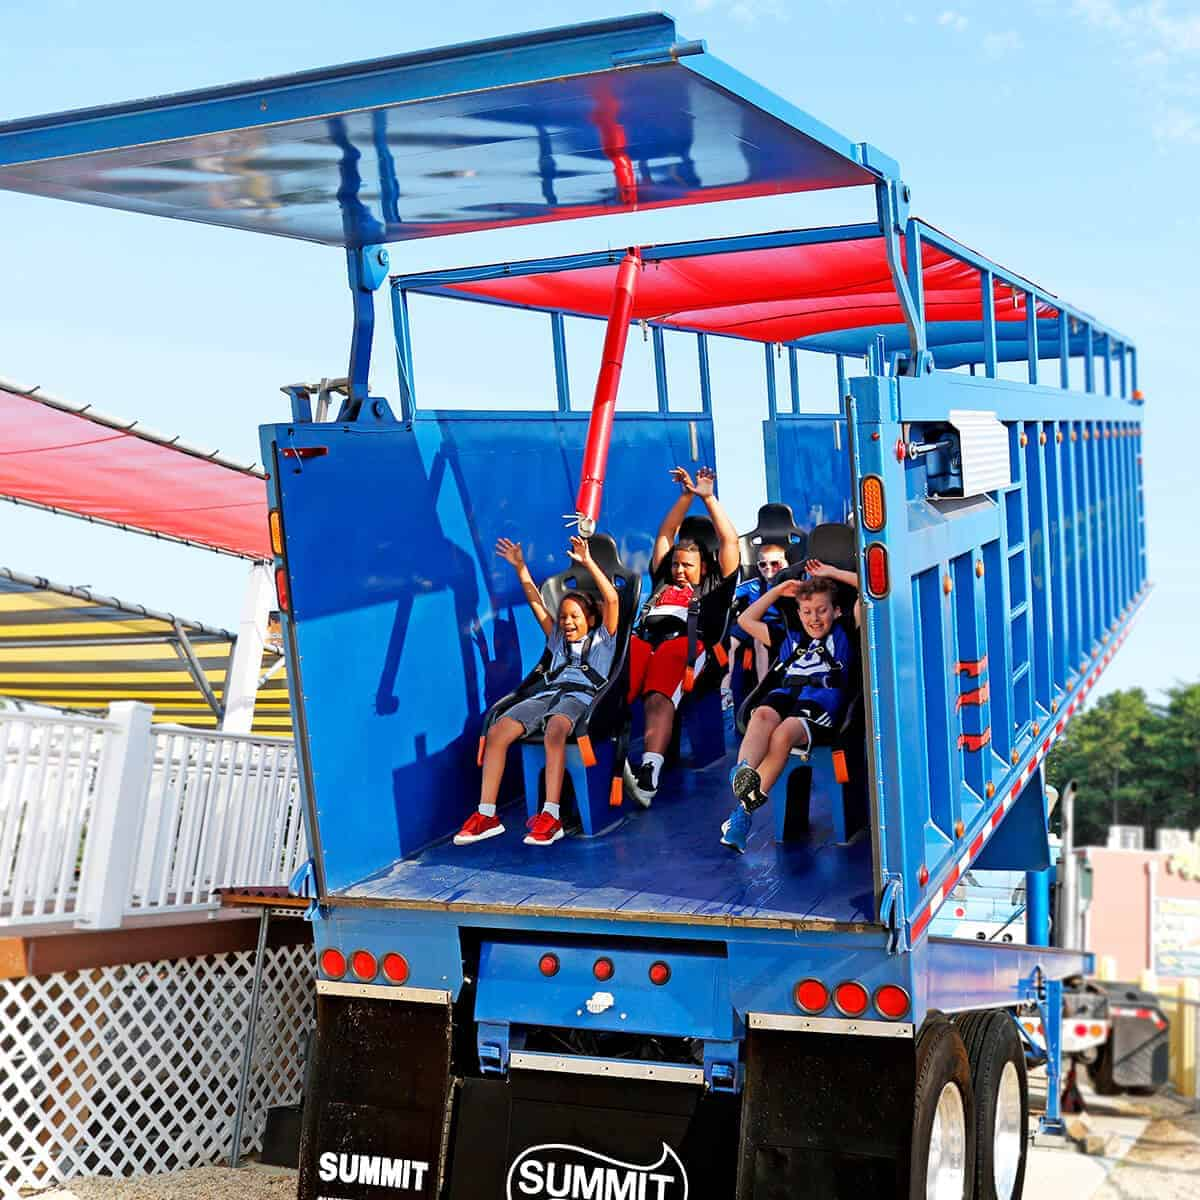 Cheering kids being lifted from the Greased Beast